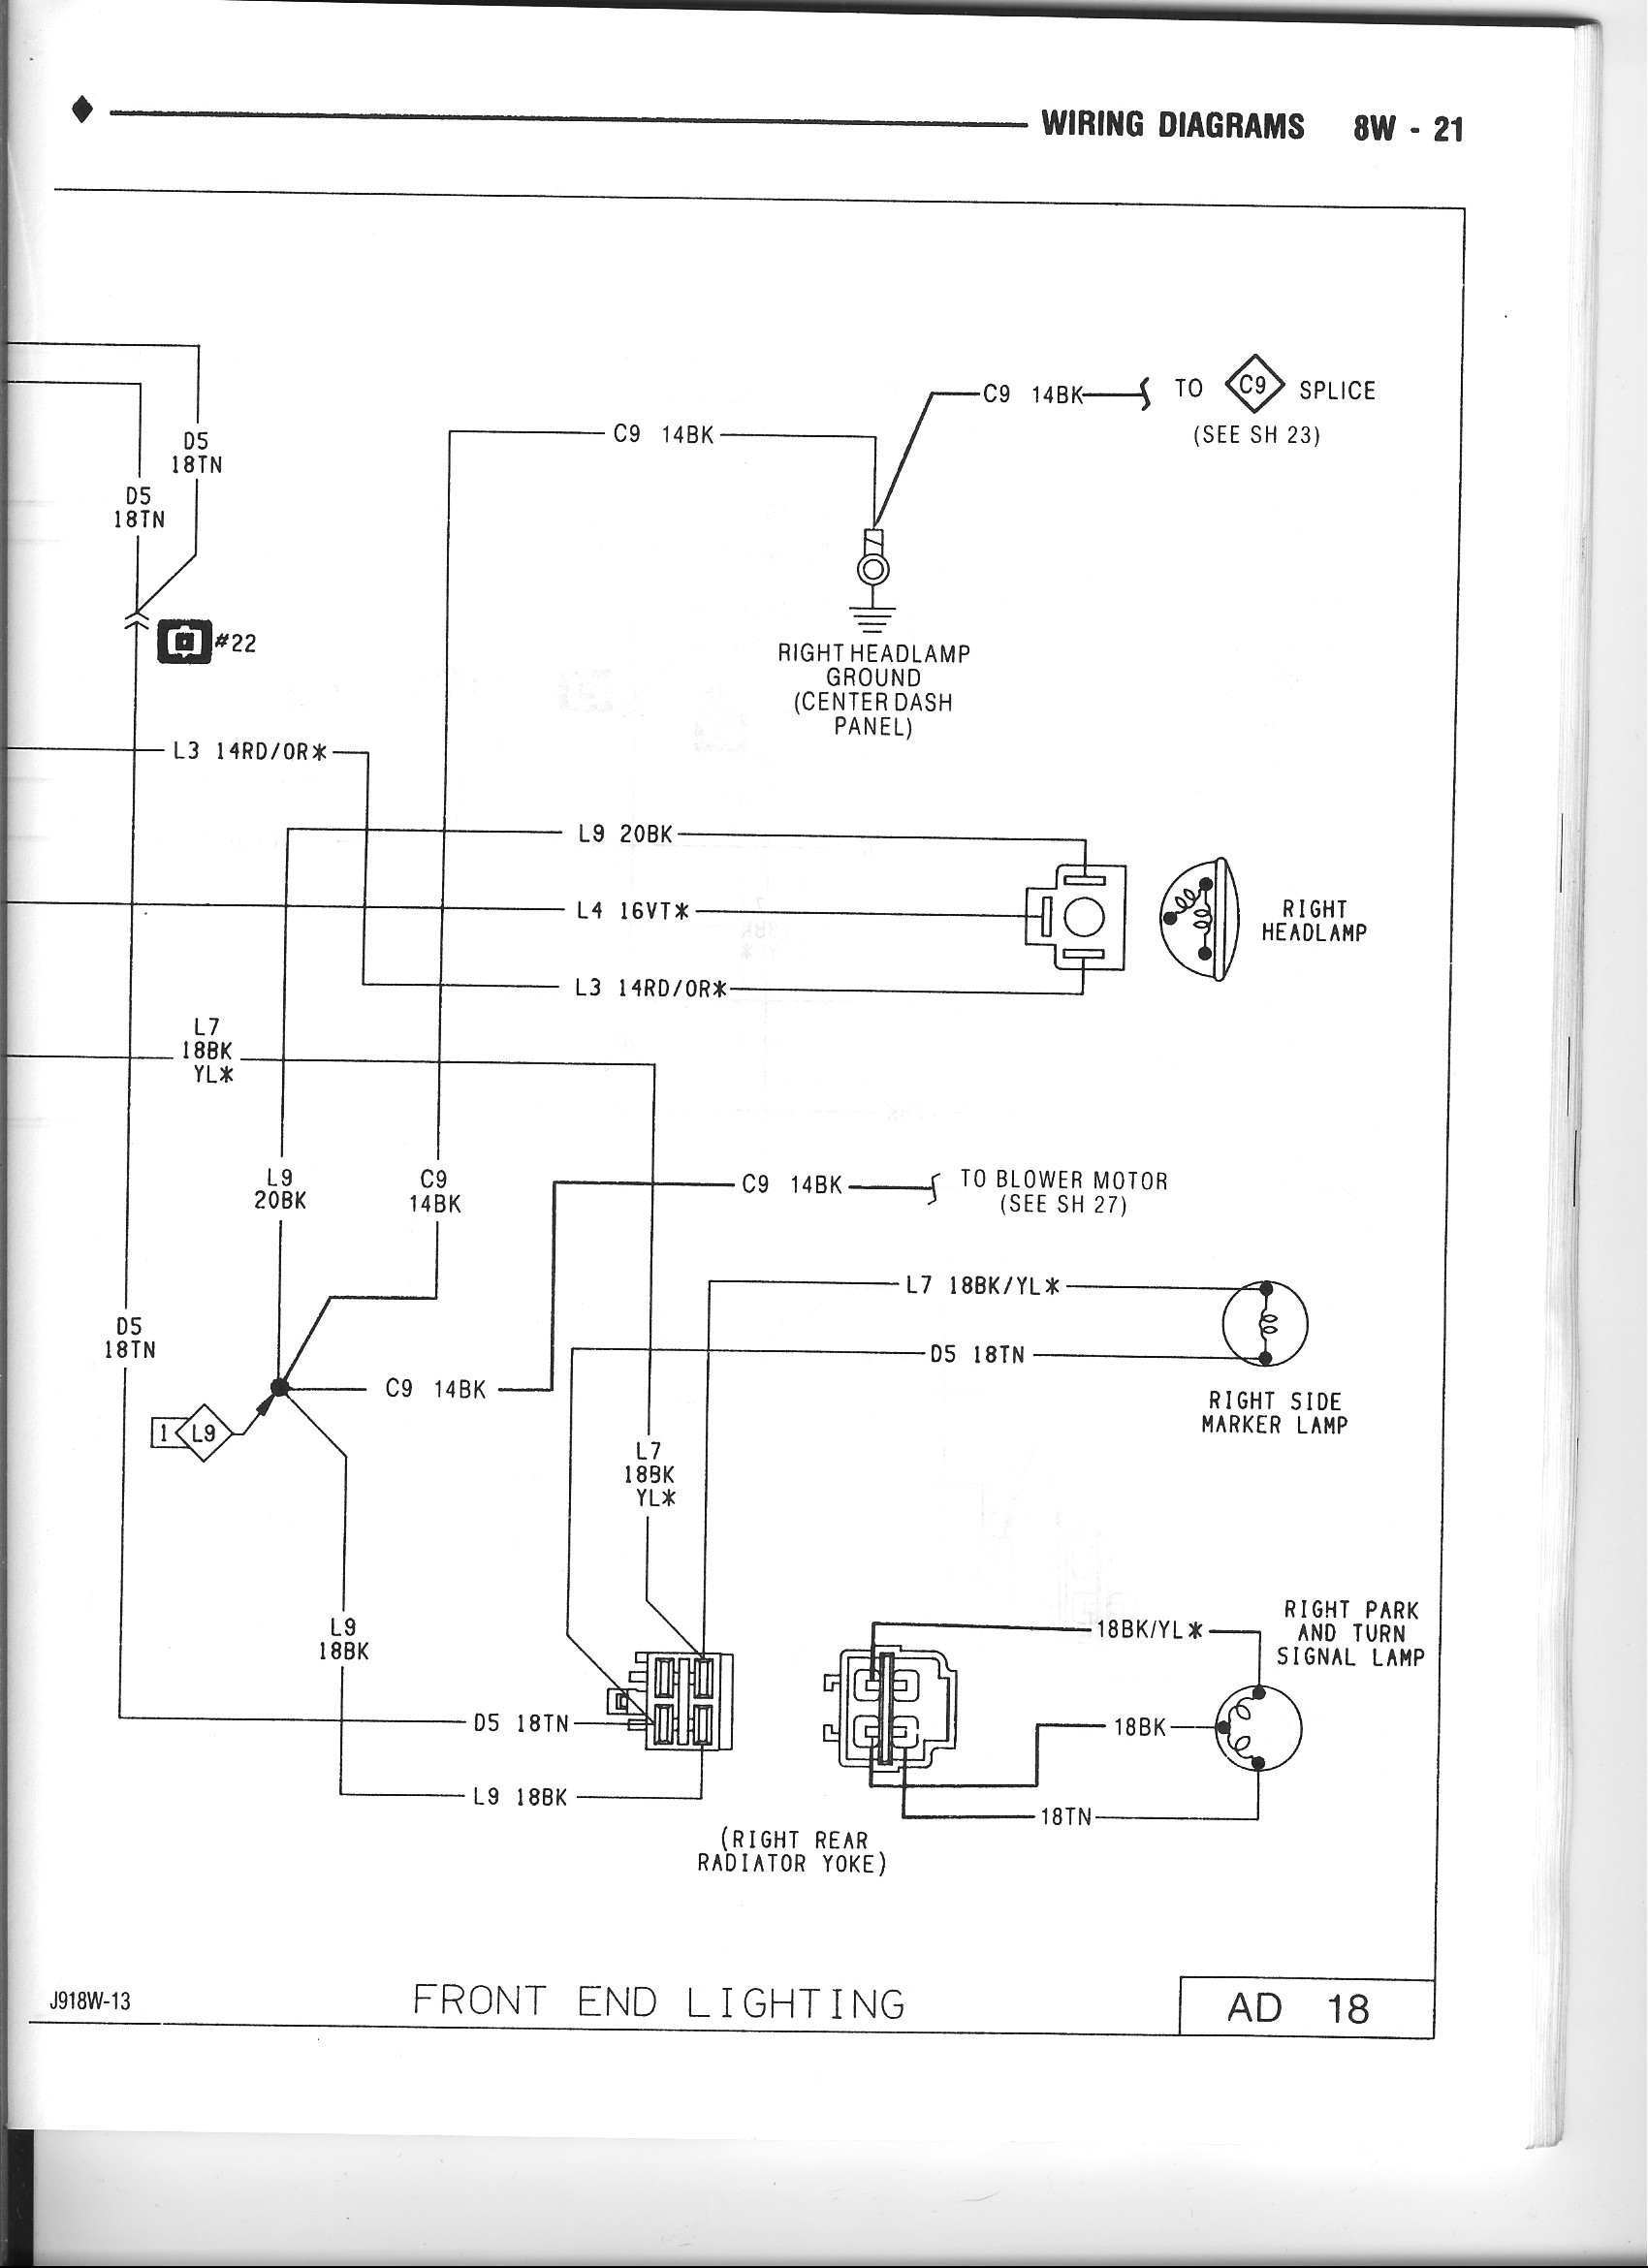 1991 Dodge Pickup Wiring Diagrams Fuses Schematic 2019 Chevy Diagram To Install Starter In Silverado 1500